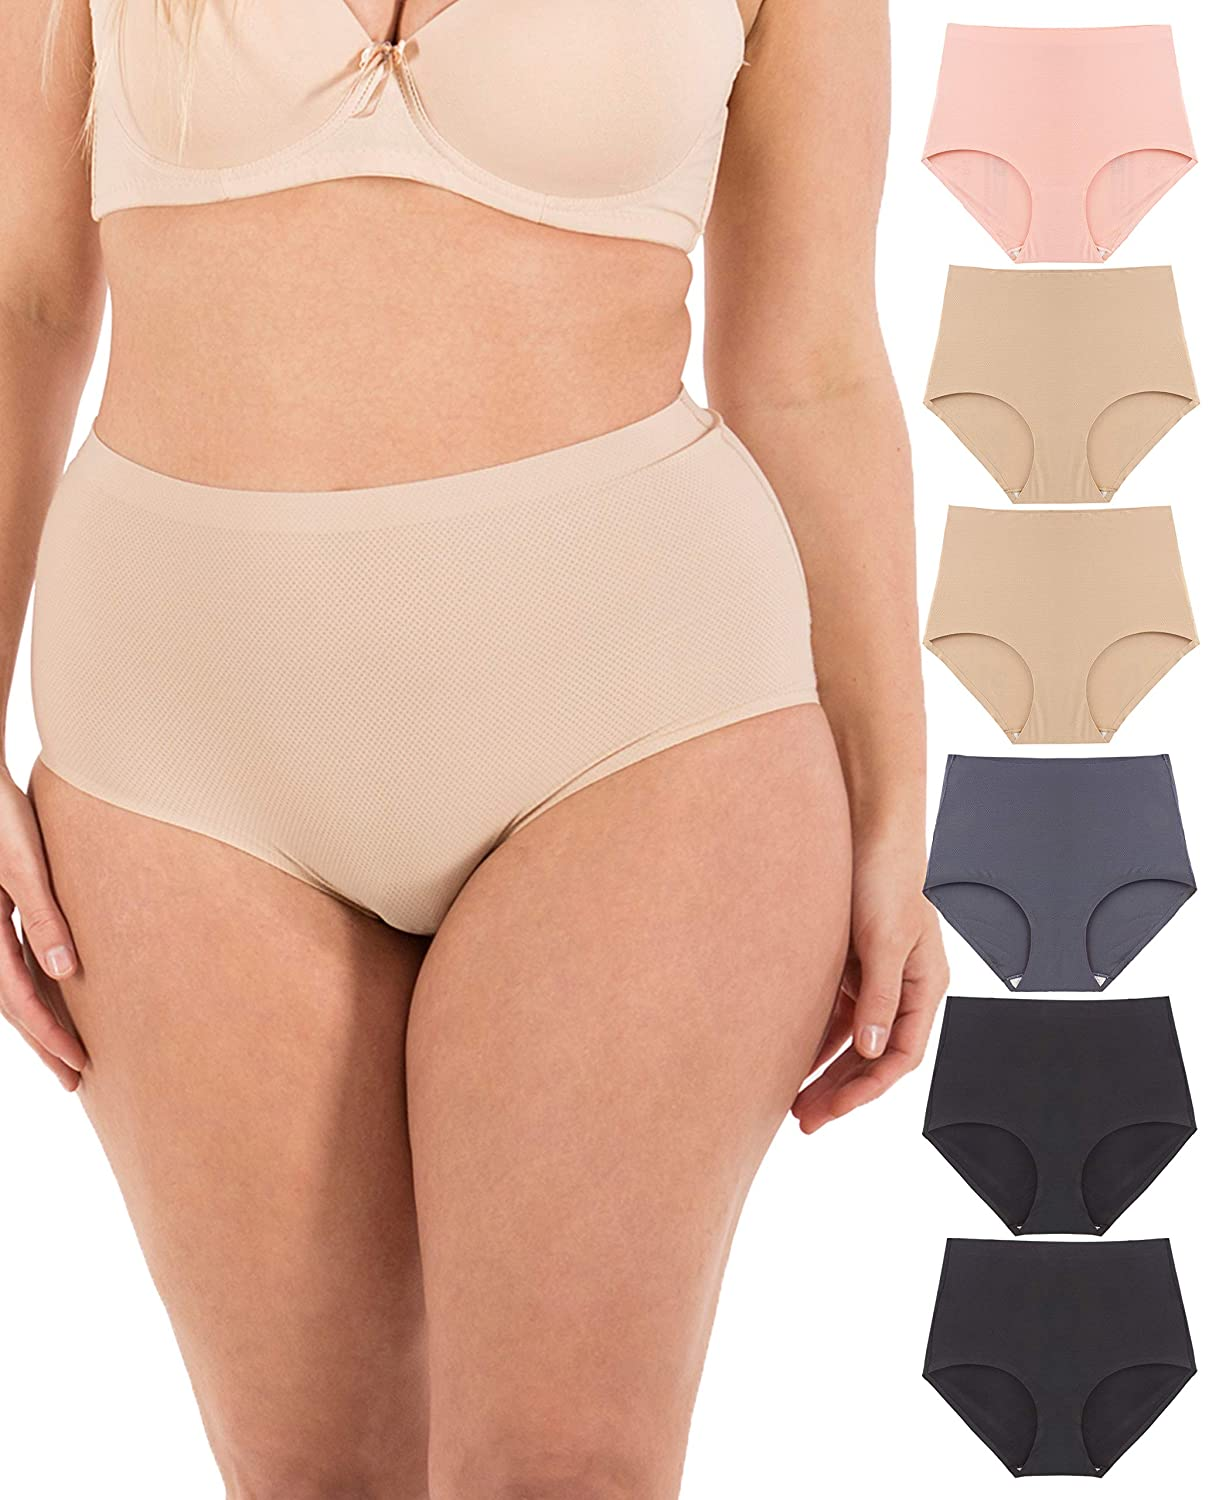 a8f56fc86a Underwear Women - Seamless No-Show Womens Underwear Small to Plus Size 6  Panties at Amazon Women's Clothing store: